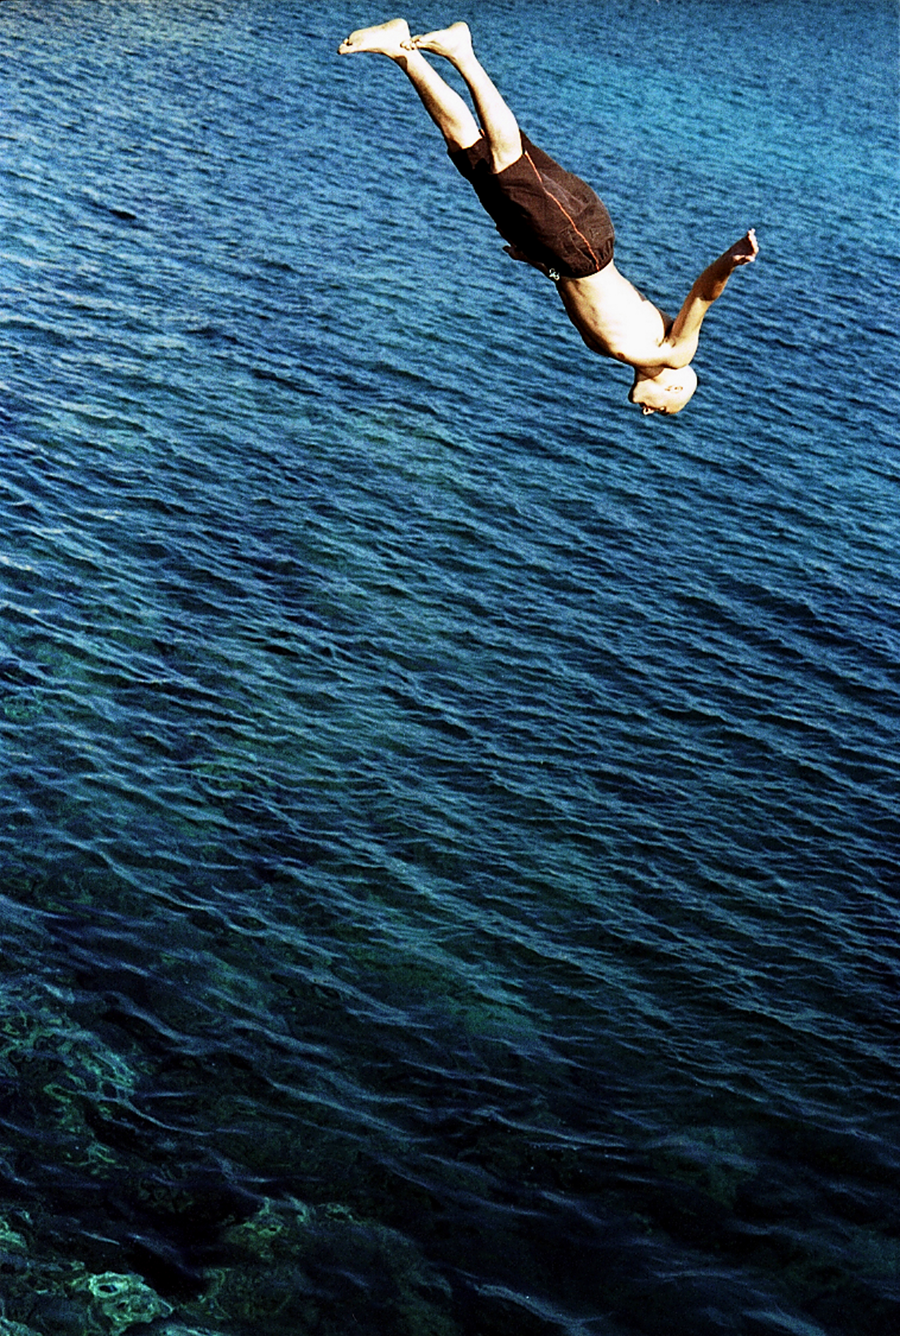 Danny Cliff jumping in Sicily, 2004